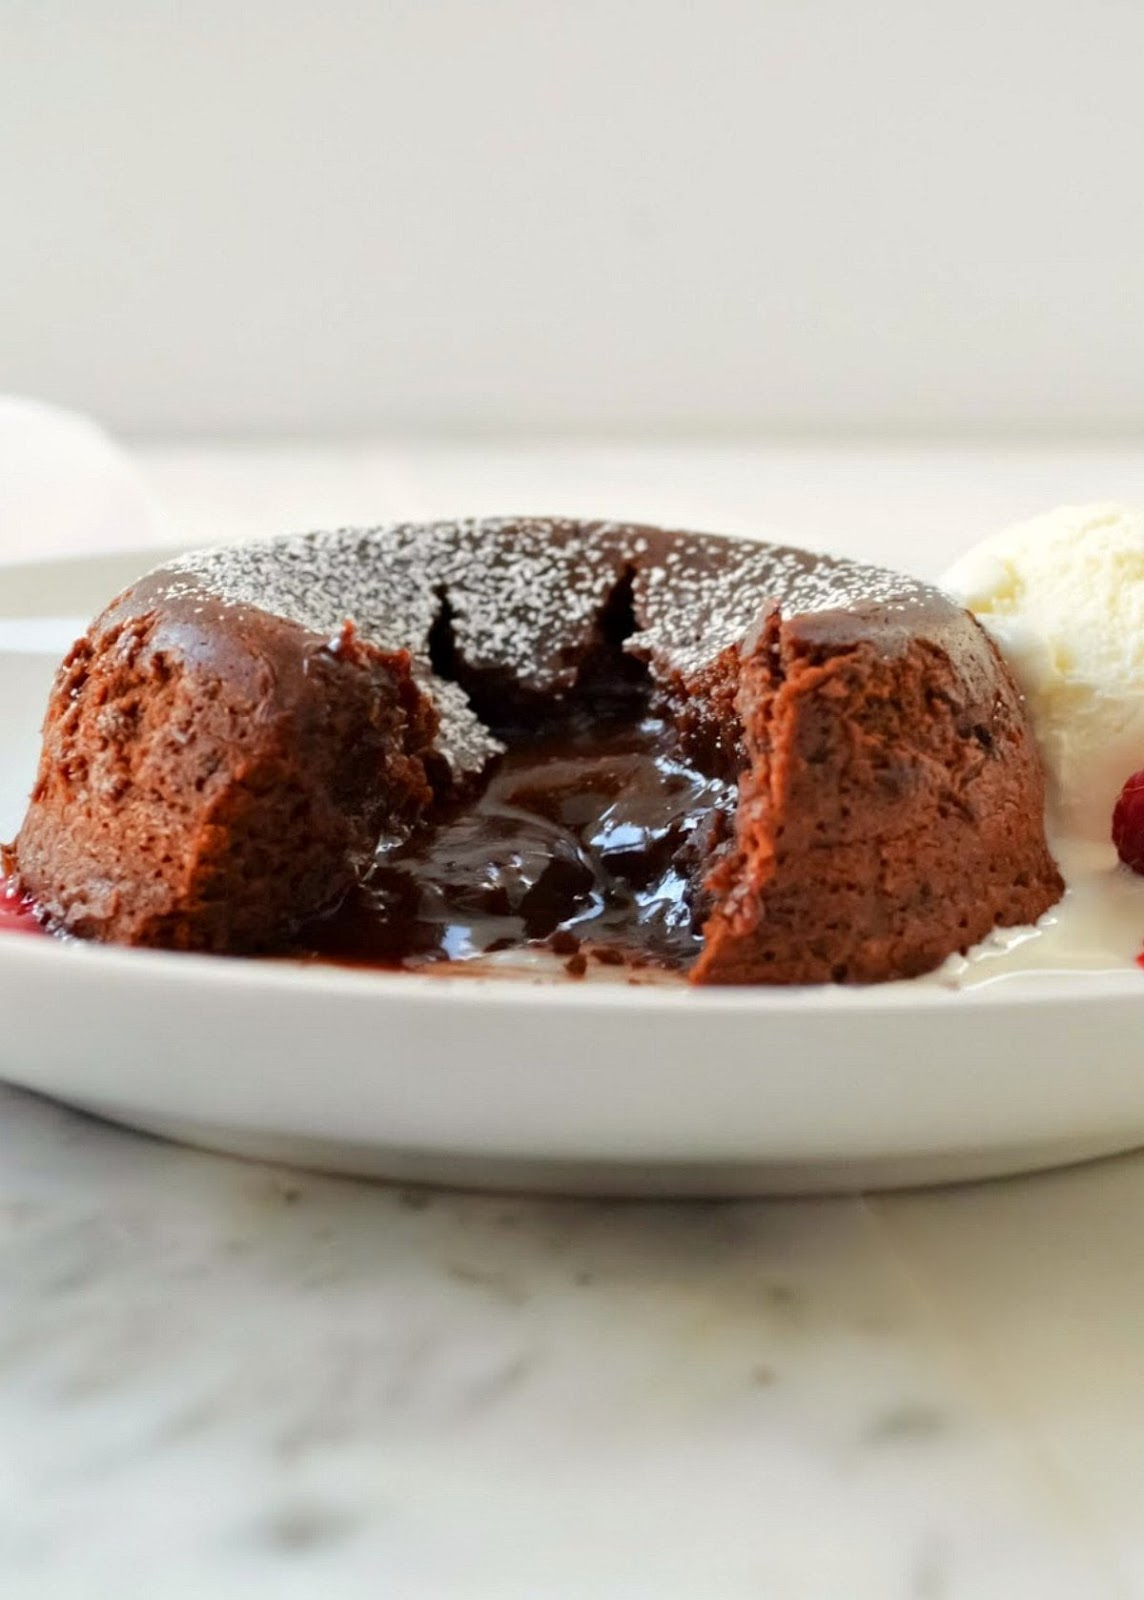 Warm molten chocolate coming out of the center of a Lava Cake is what makes these a favorite dessert recipe from Serena Bakes Simply From Scratch.